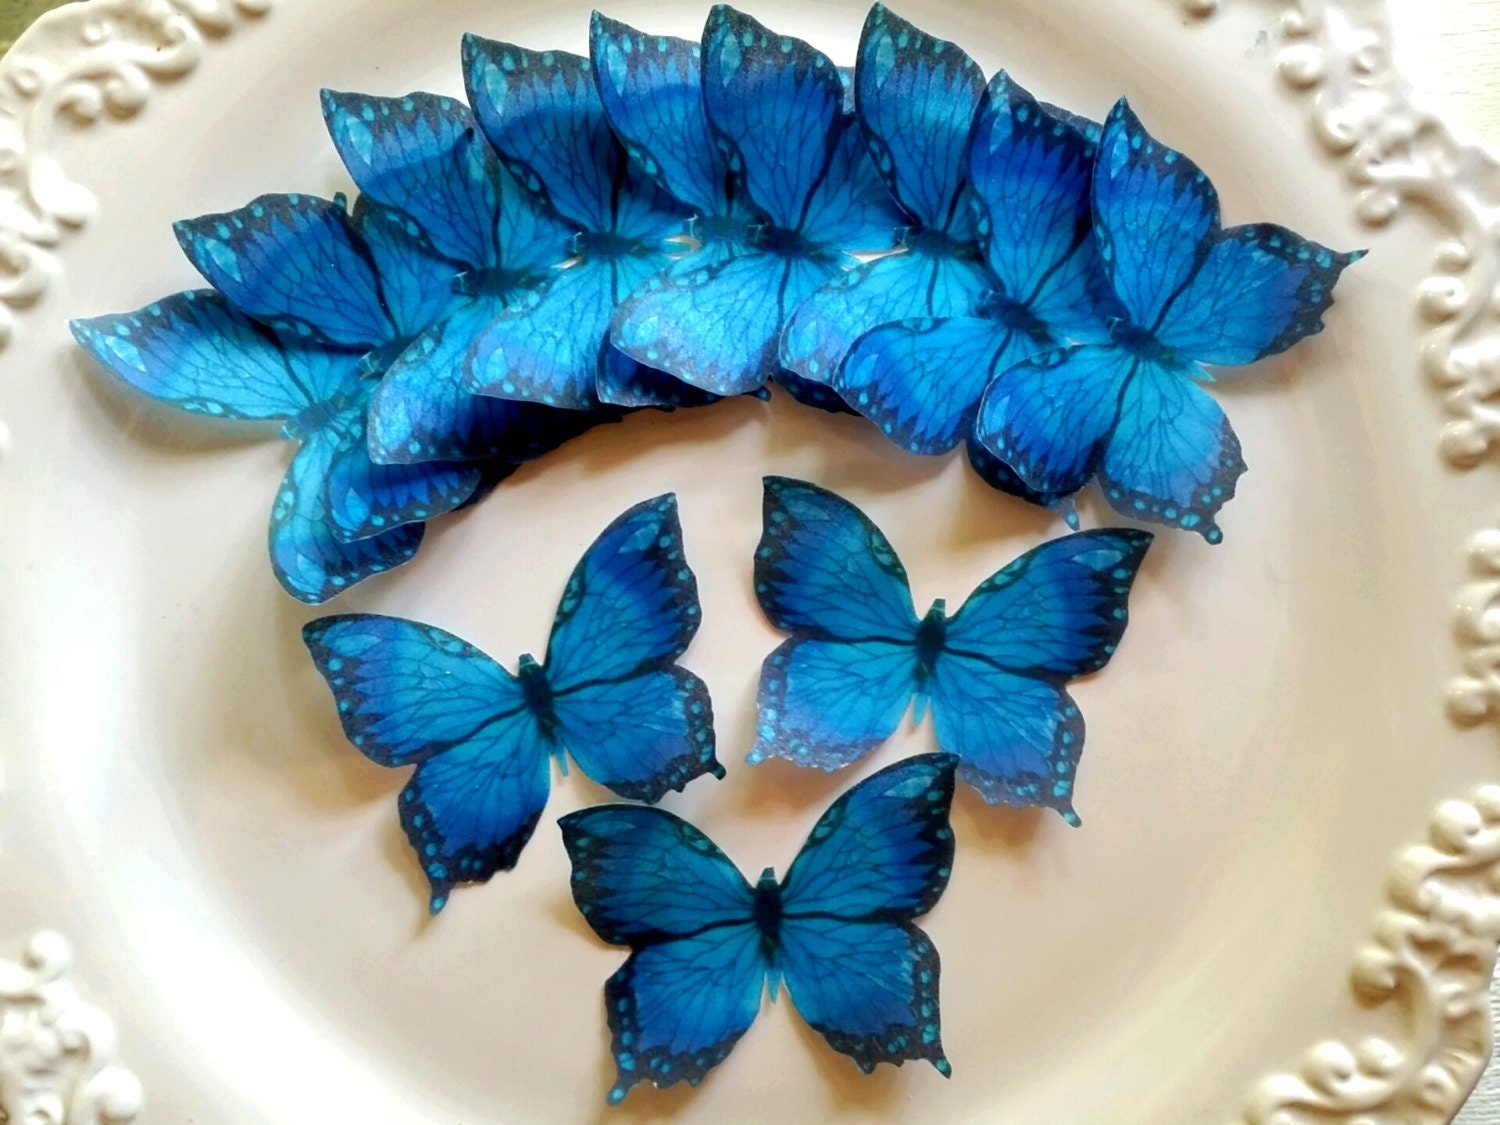 Butterfly Edible Cake Images : Edible Butterfly Majestic Blue Cake Toppers / Cake decorating/